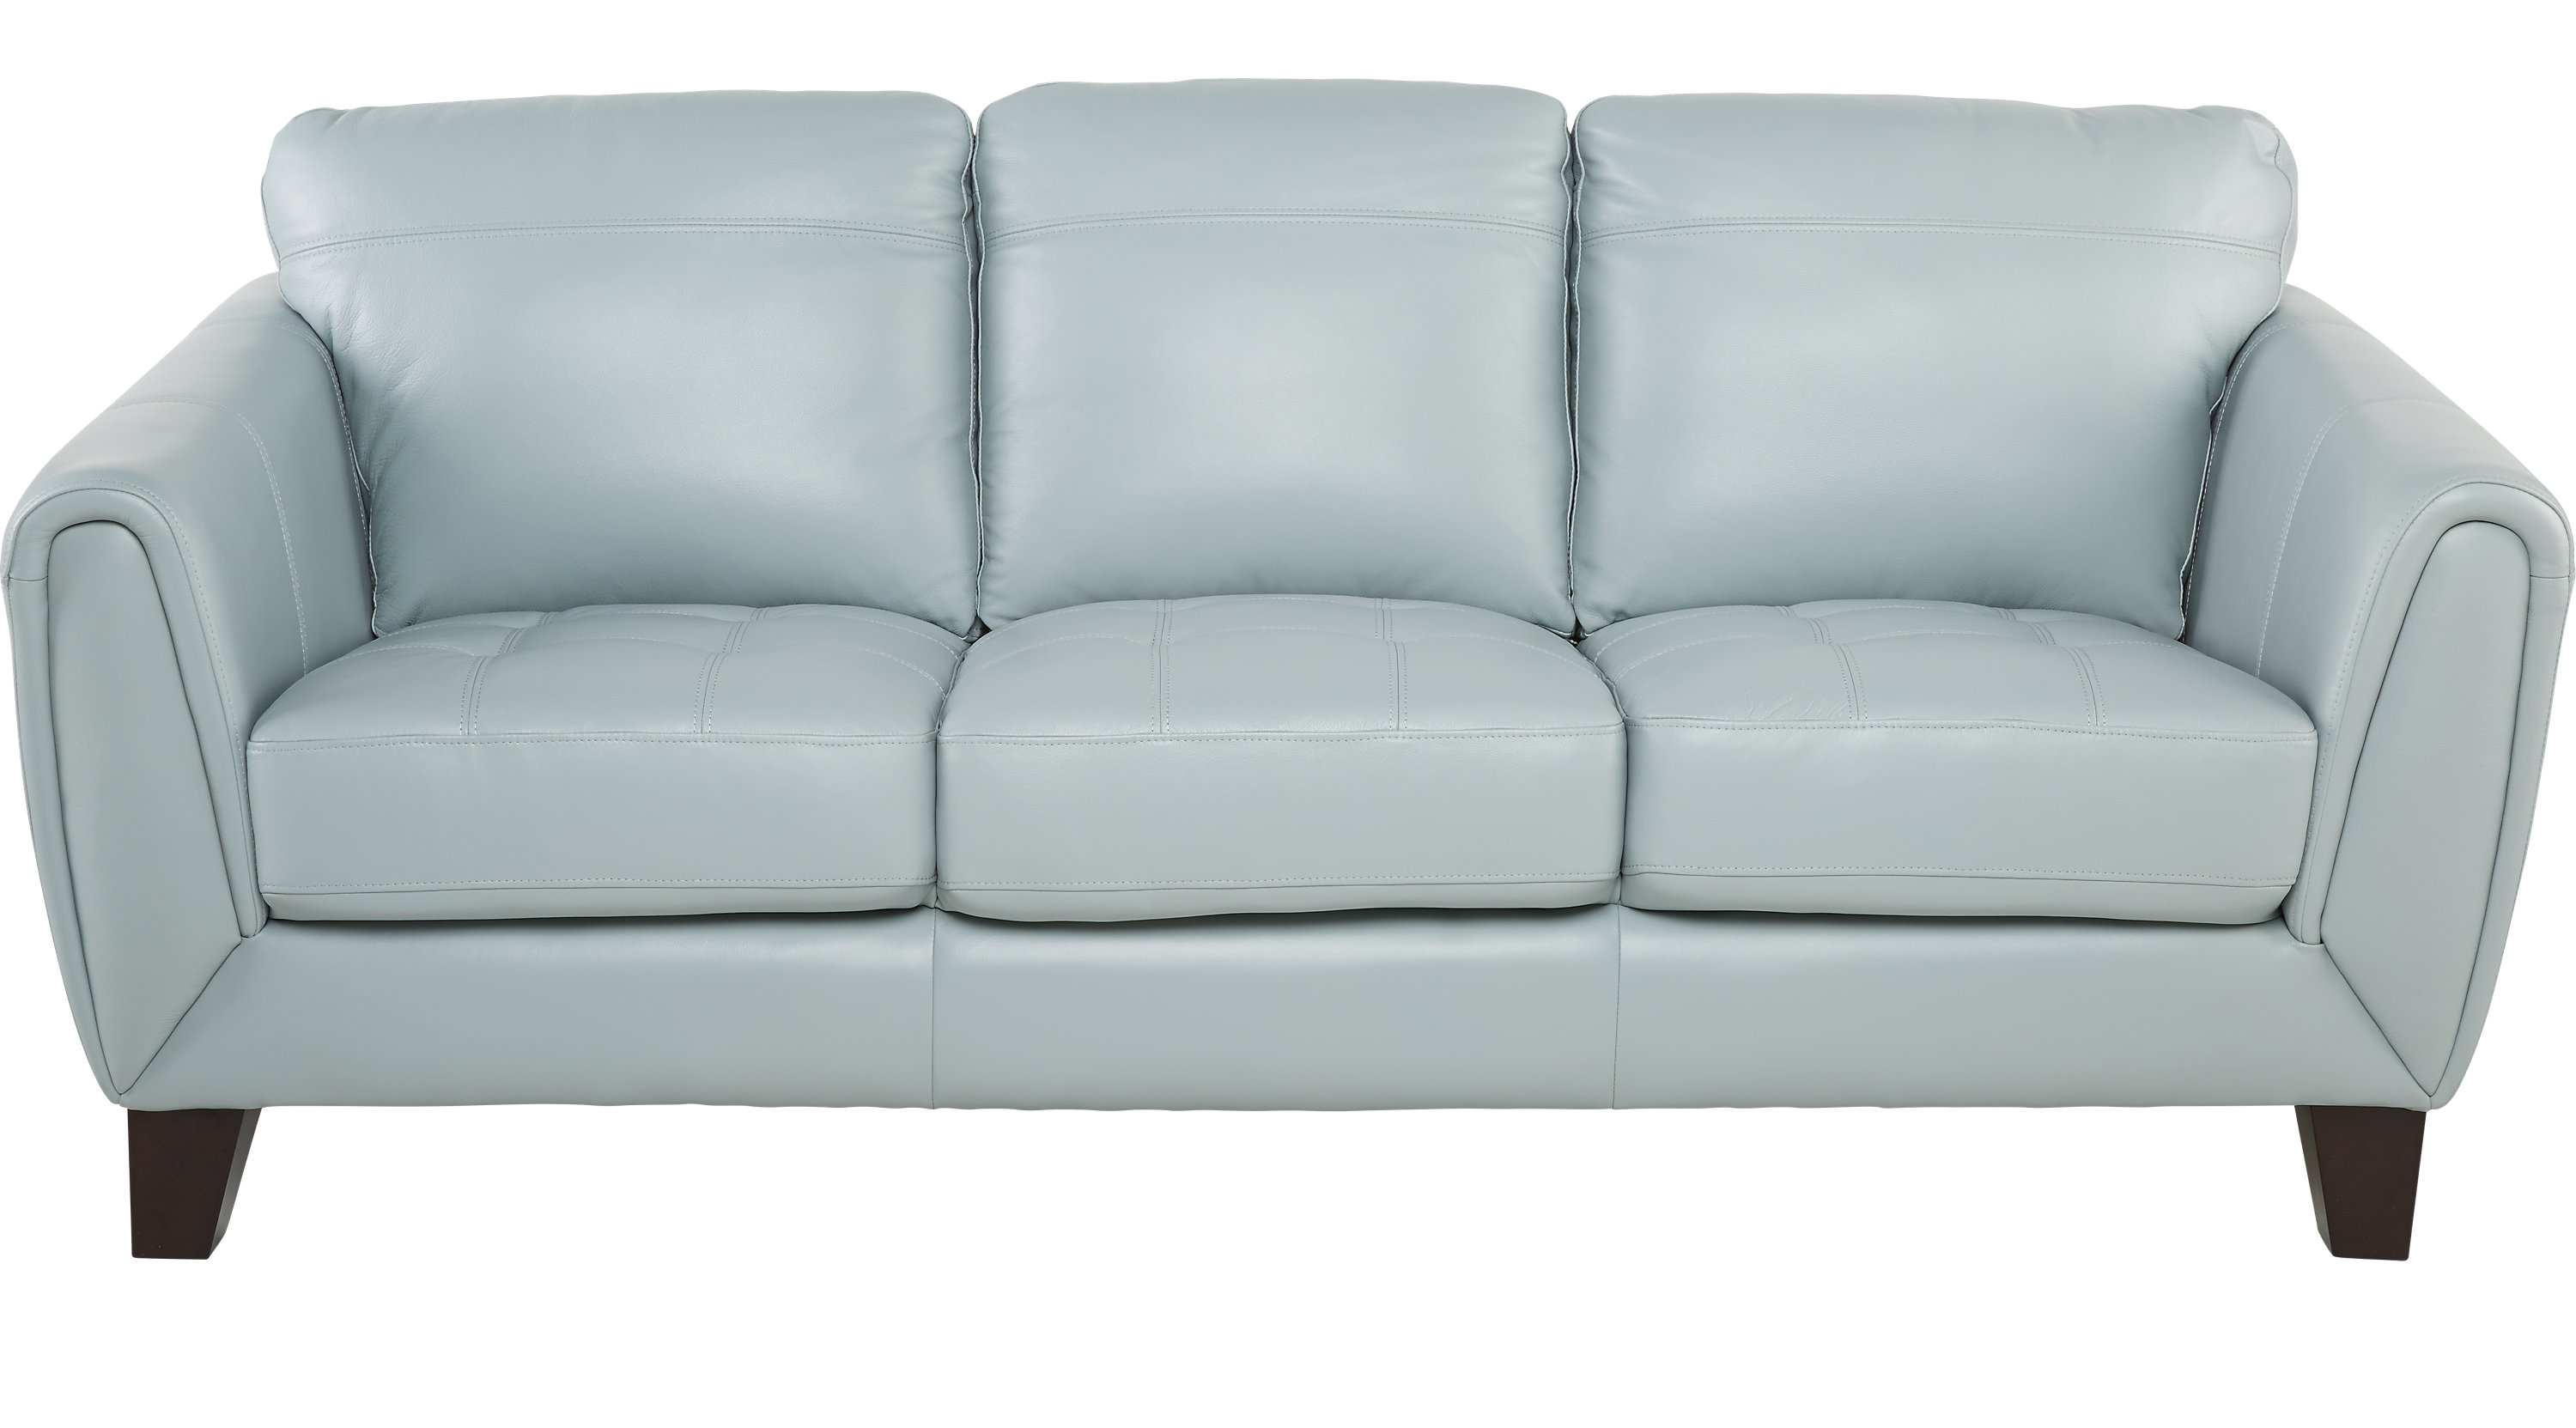 Livorno Aqua Light Blue Leather Sofa Classic